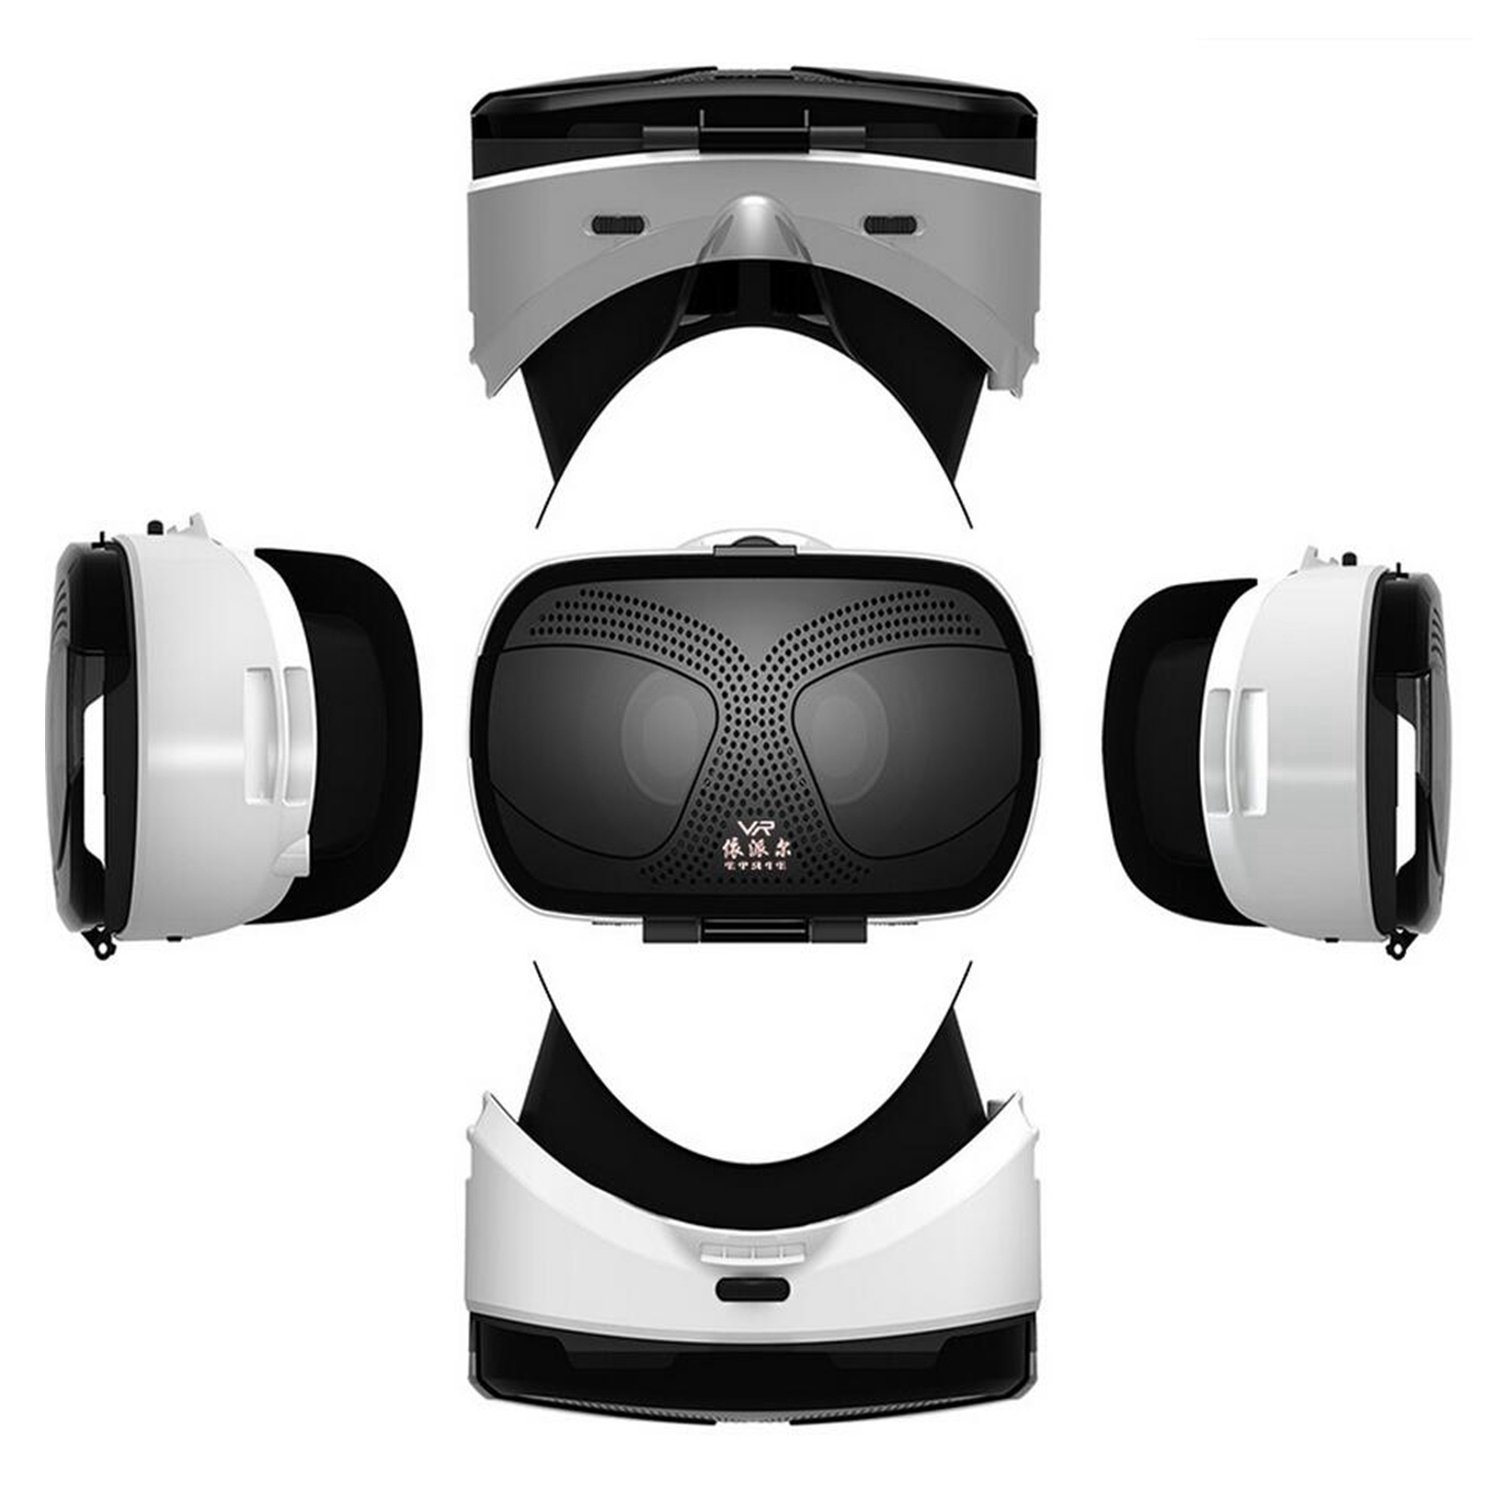 """VR Virtual Reality Headset, 3D VR Glasses for Movies Games VR Headset for Samsung Galaxy S8 S7 Edge S6 S5 Mini iPhone 8 7 6S 6 Plus & Other 4.5-6.0"""" IOS Android PC Smartphones like LG Google Pixel etc TSANGLIGHT"""